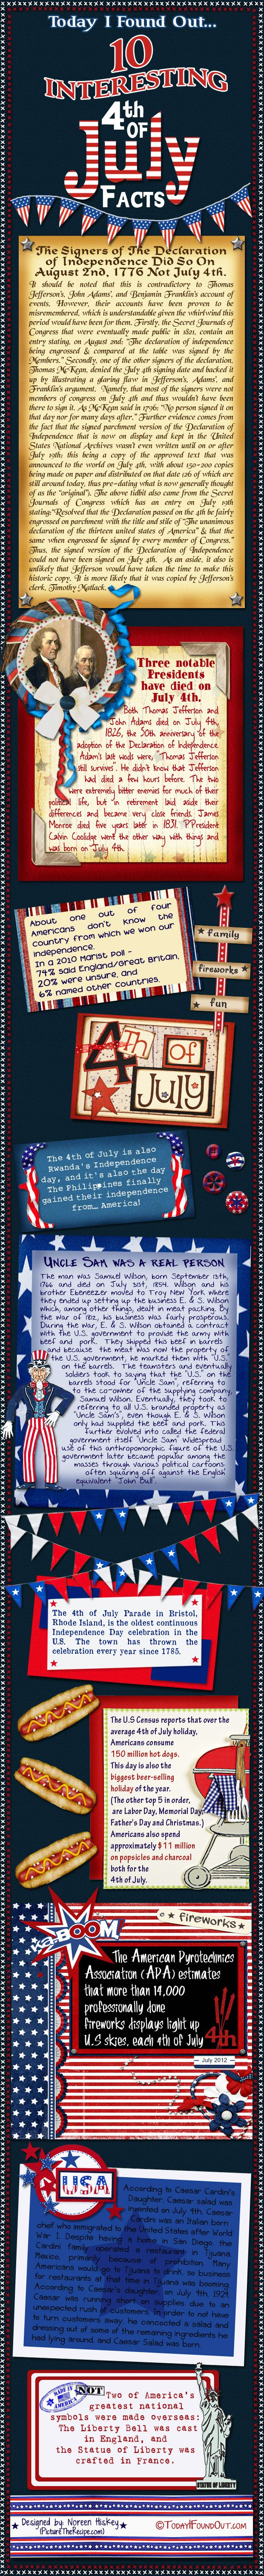 10 Interesting 4th Of July Facts (only fact missing is that Uncle Sam was originally from Arlington, MA!